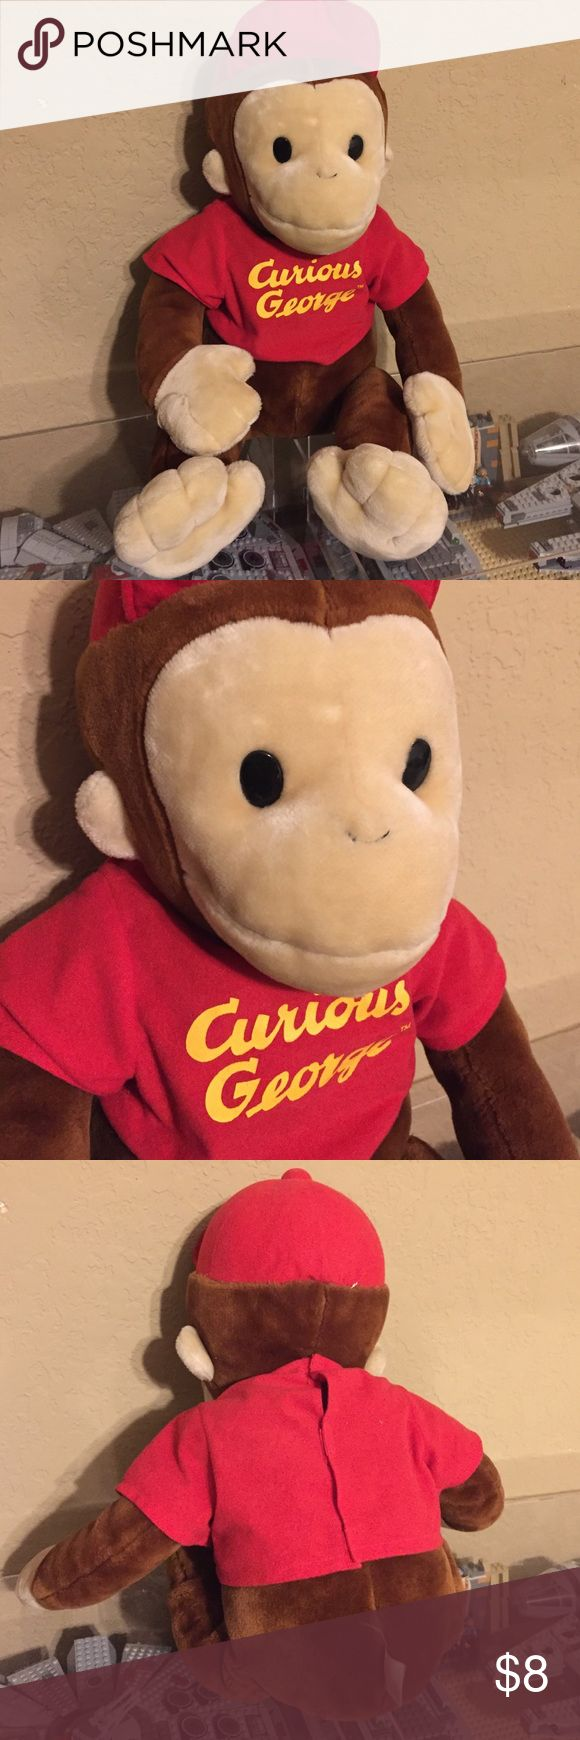 Curious George Stuffed Animal Cute for kids or adults alike measures roughly 27 inches tall curious george Other